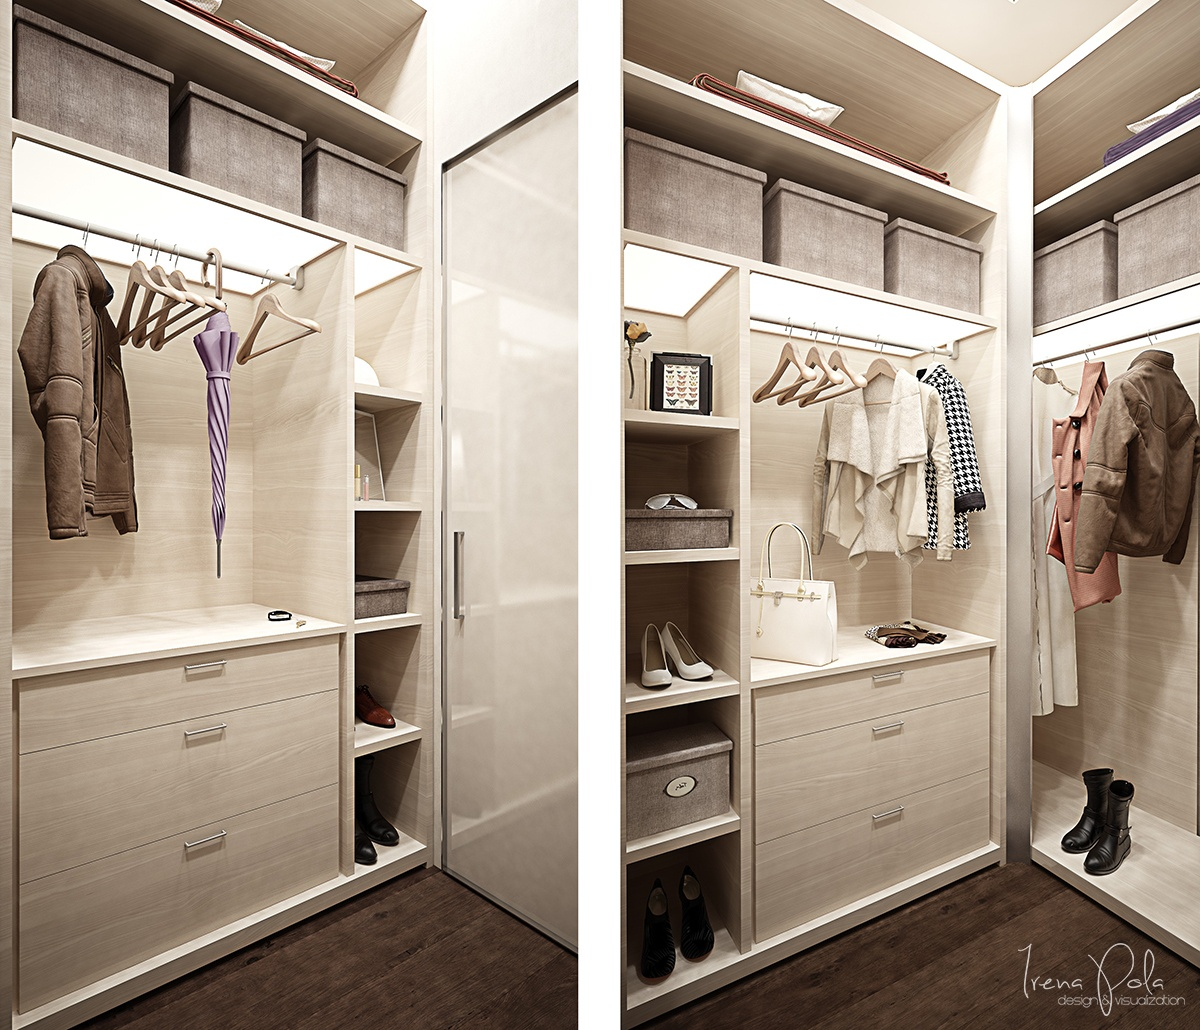 Walk in closet ideas interior design ideas Walk in closet design